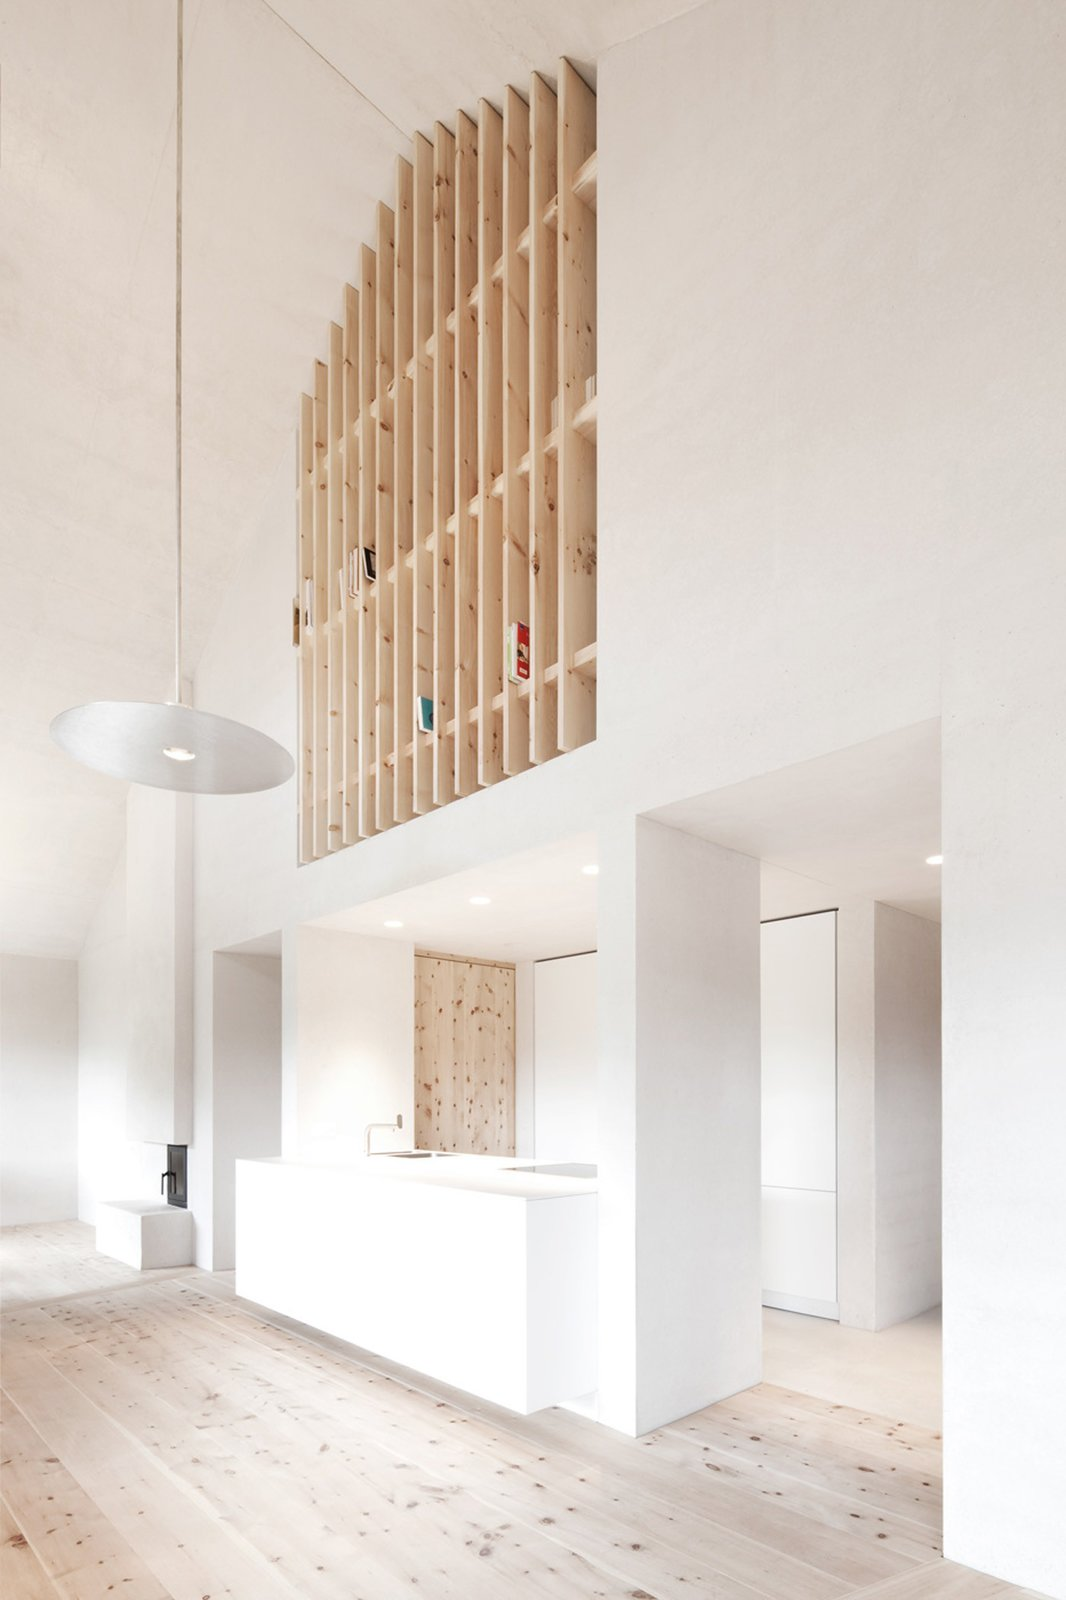 Upstairs, a wooden slatted wall doubles as a bookshelf.  La Pedevilla by Dwell